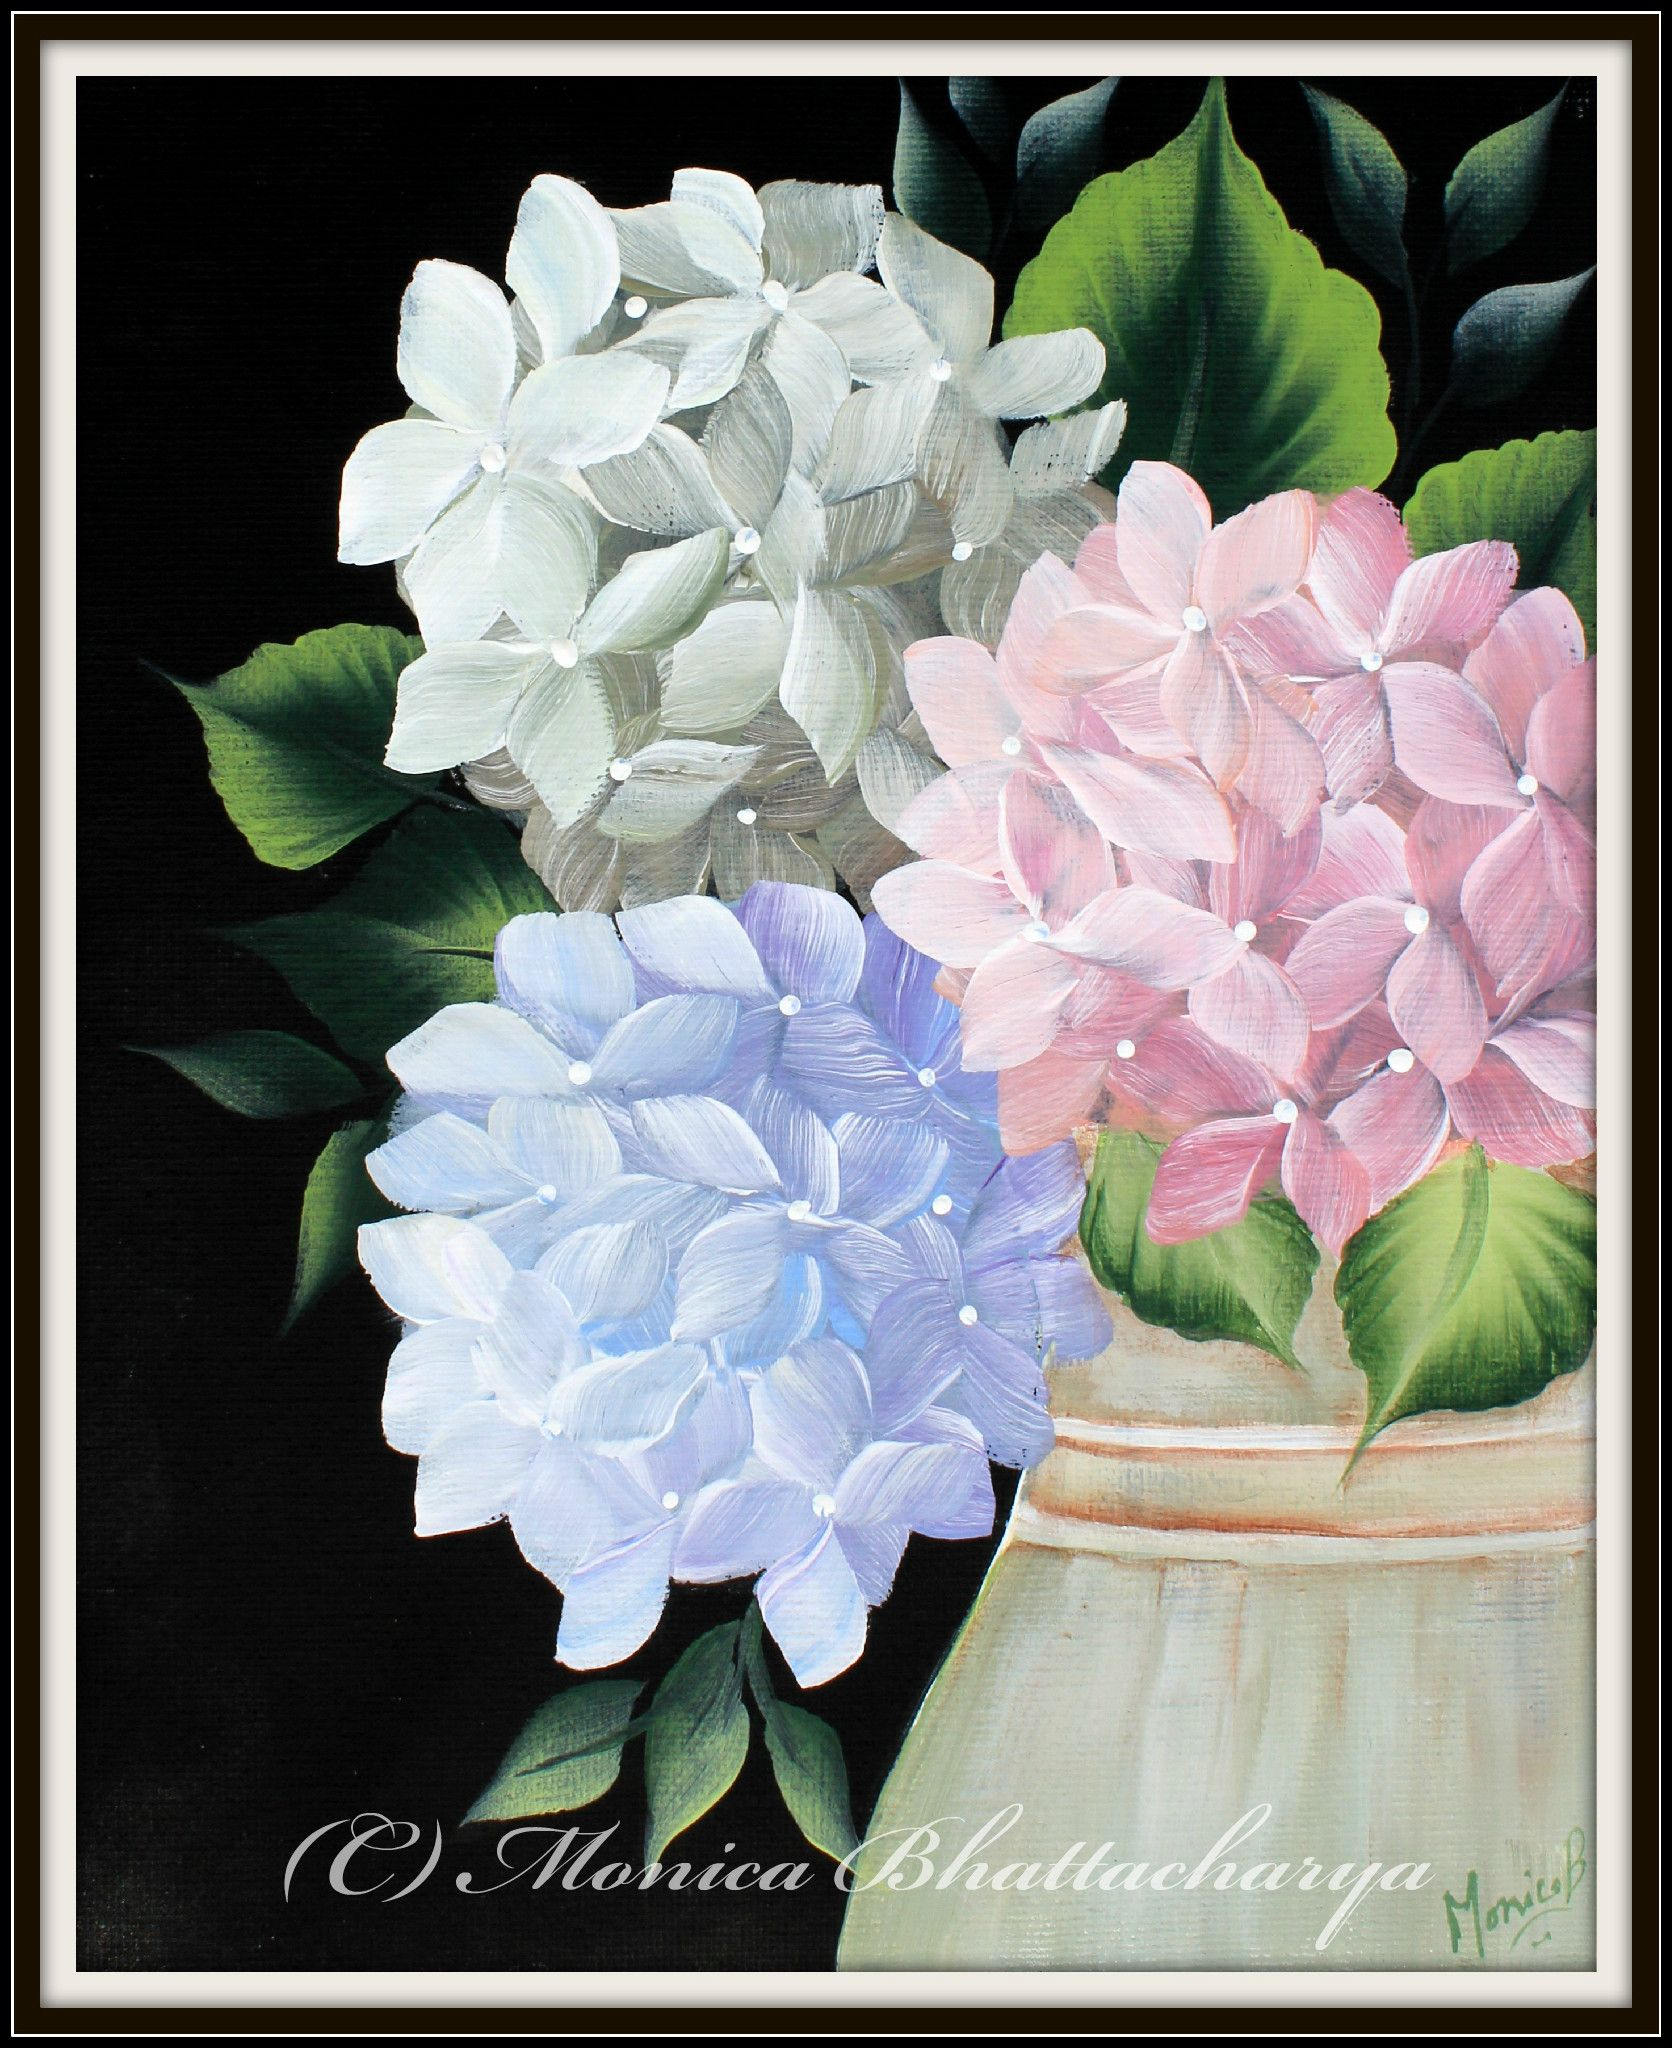 Acrylics On Canvas Hydrangeas Painted By Monica Bhattacharya Flower Painting Floral Painting Hydrangea Painting